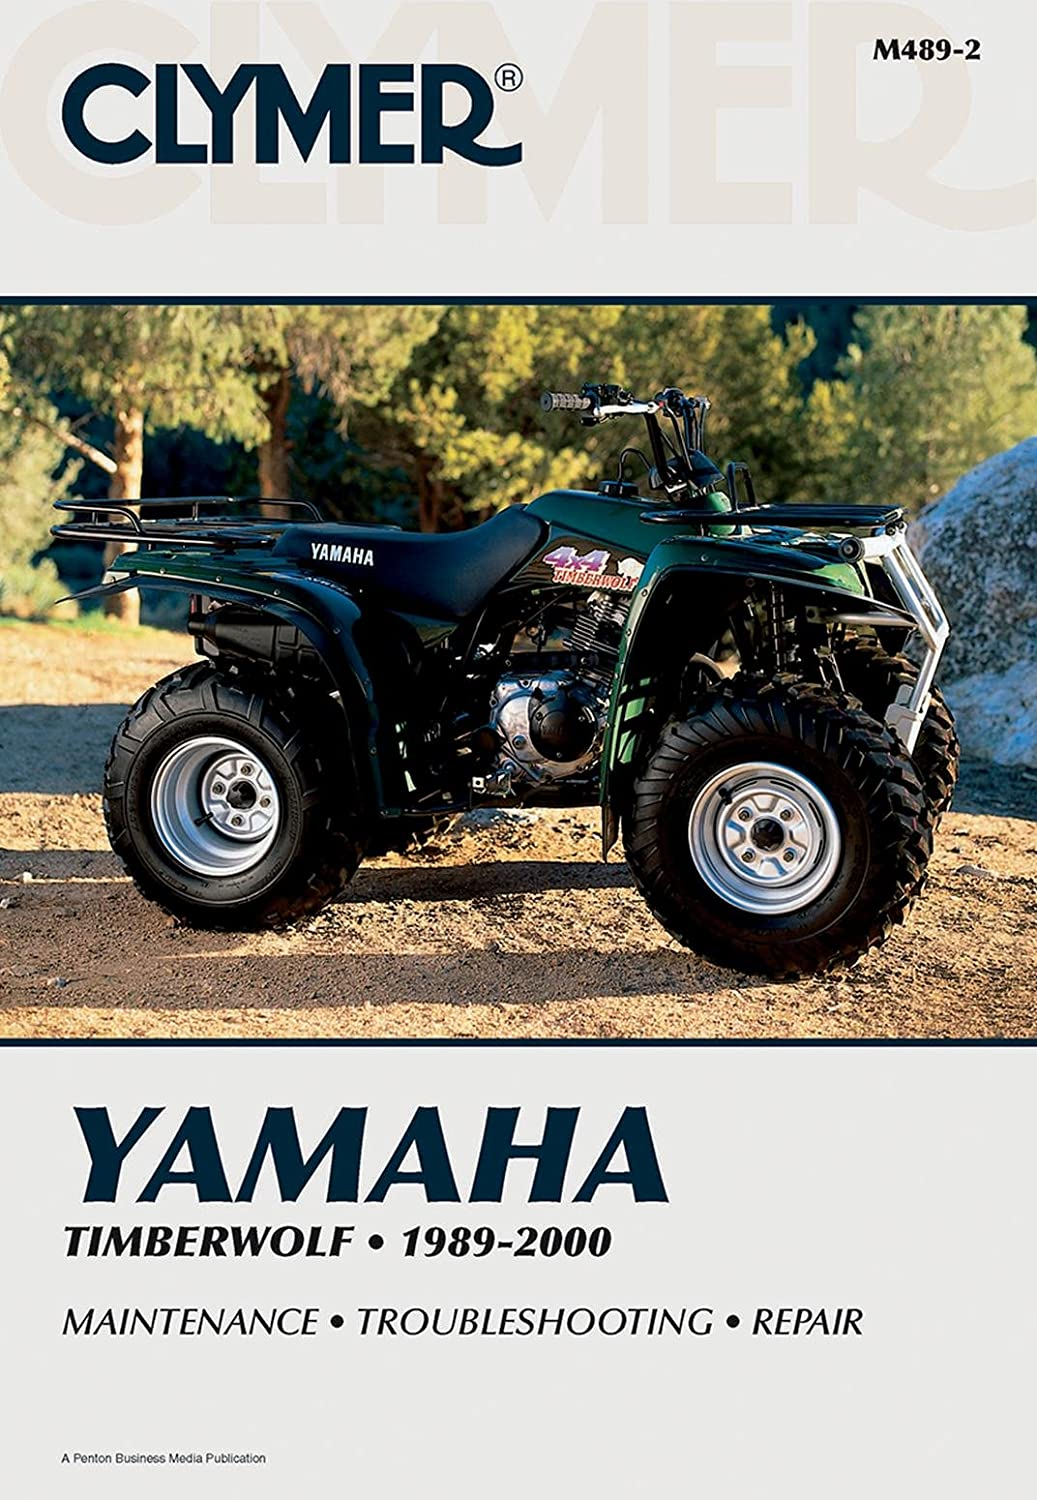 Amazon.com: Clymer Repair Manual for Yamaha ATV Timberwolf YFB250 89-00:  Automotive